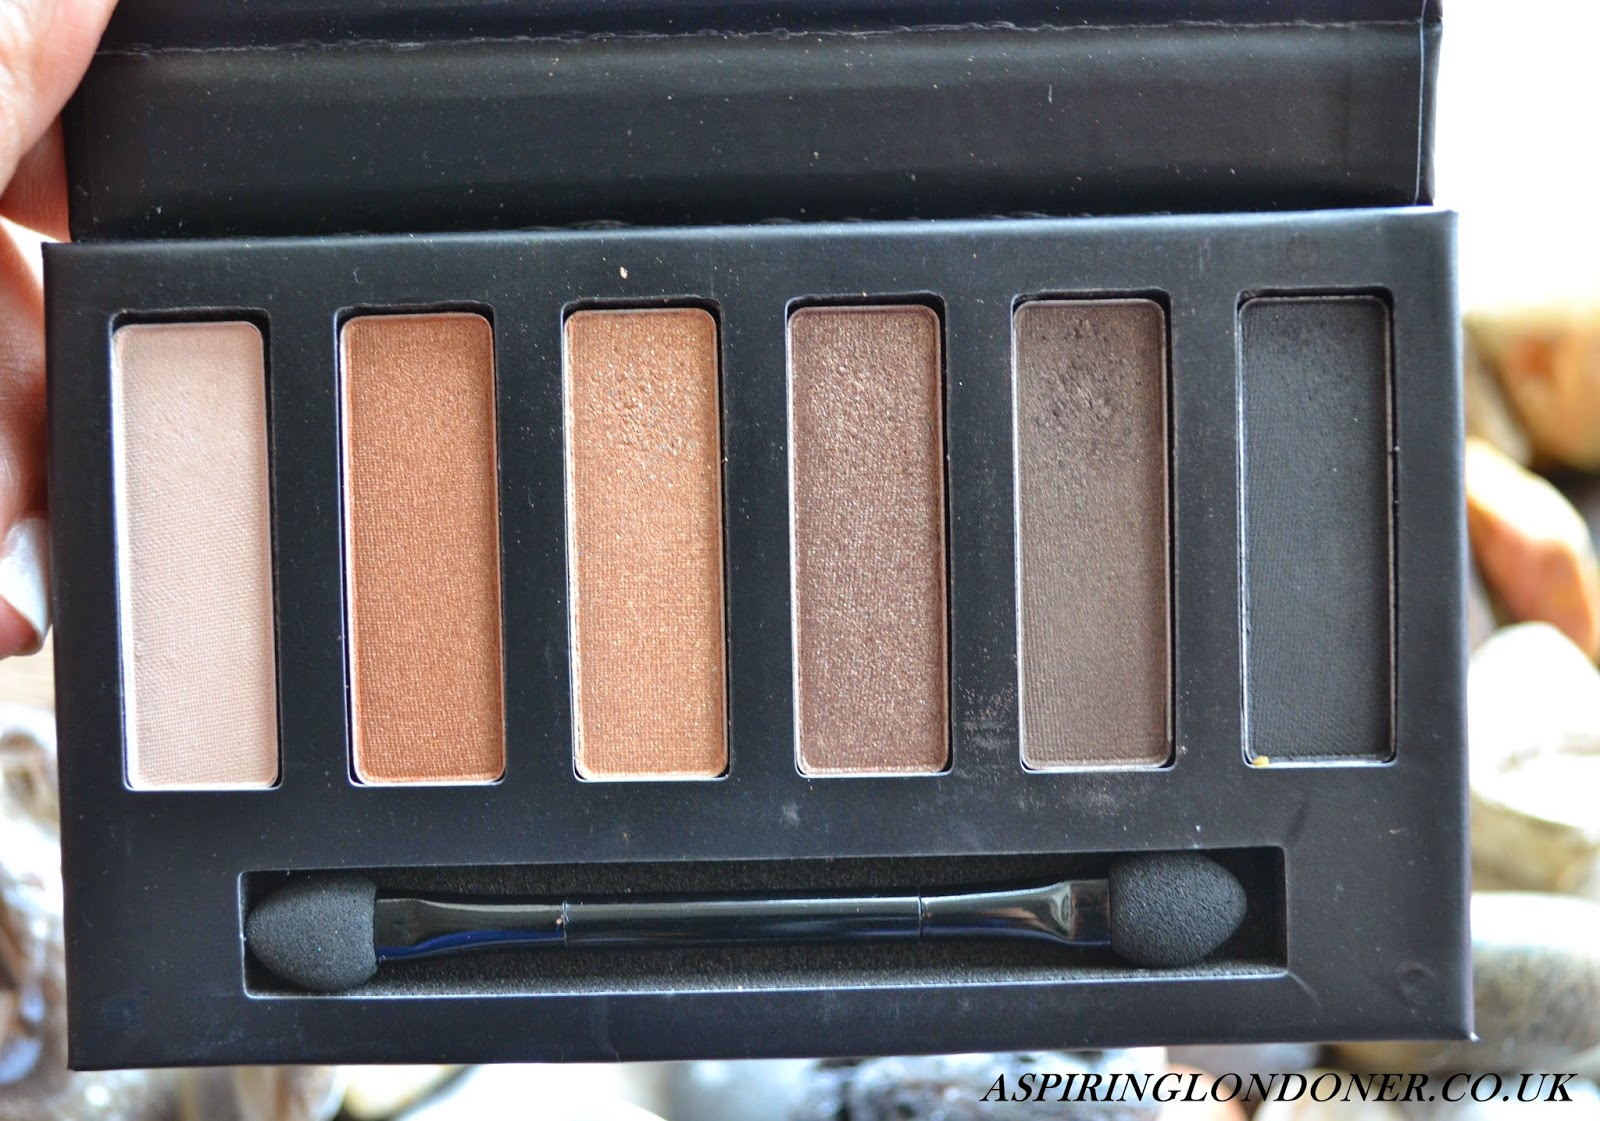 Collection Little Mix All About The Eyes Palette Review - Aspiring Londoner